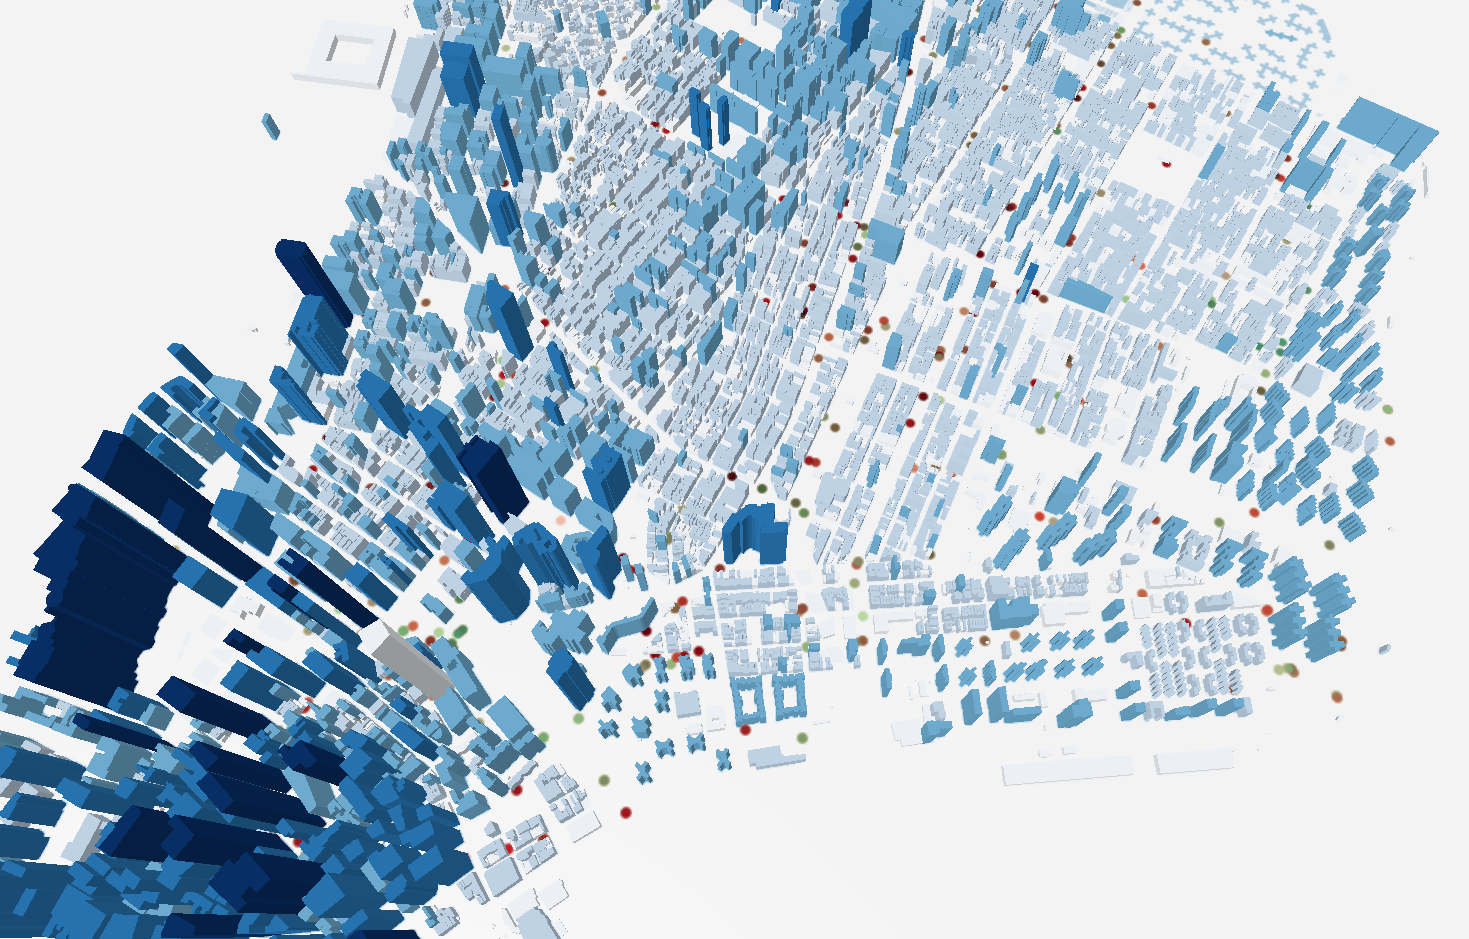 Tutorial: Visualizing MindRider data in 3D using QGIS and